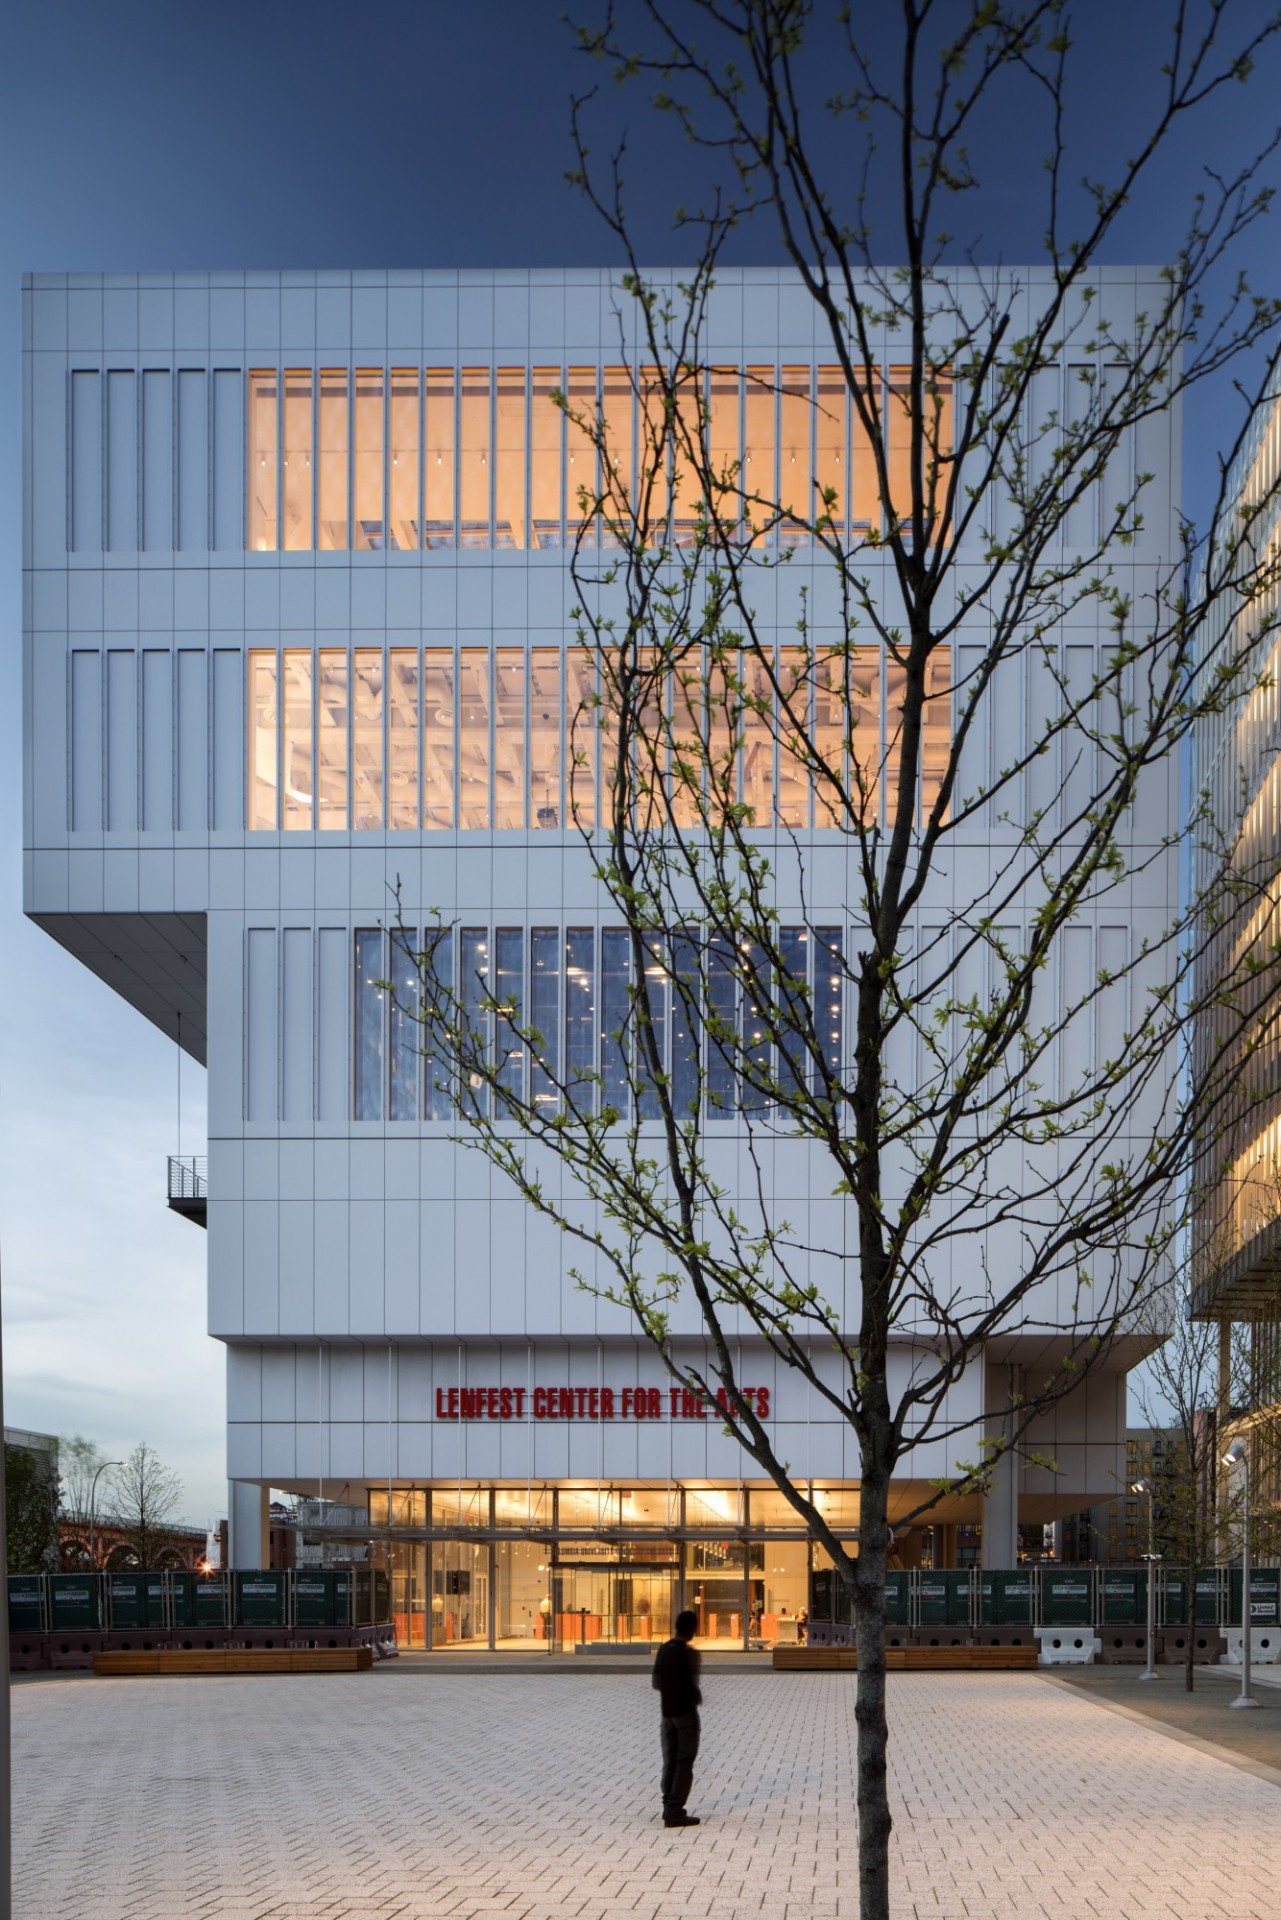 The Lenfest Center for the Arts at Columbia's Manhattanville campus. Both the Jerome L. Greene Science Center and Lenfest Center for the Arts have been awarded LEED Gold certifications for new construction. (Photo: (c) Nic Lehoux)